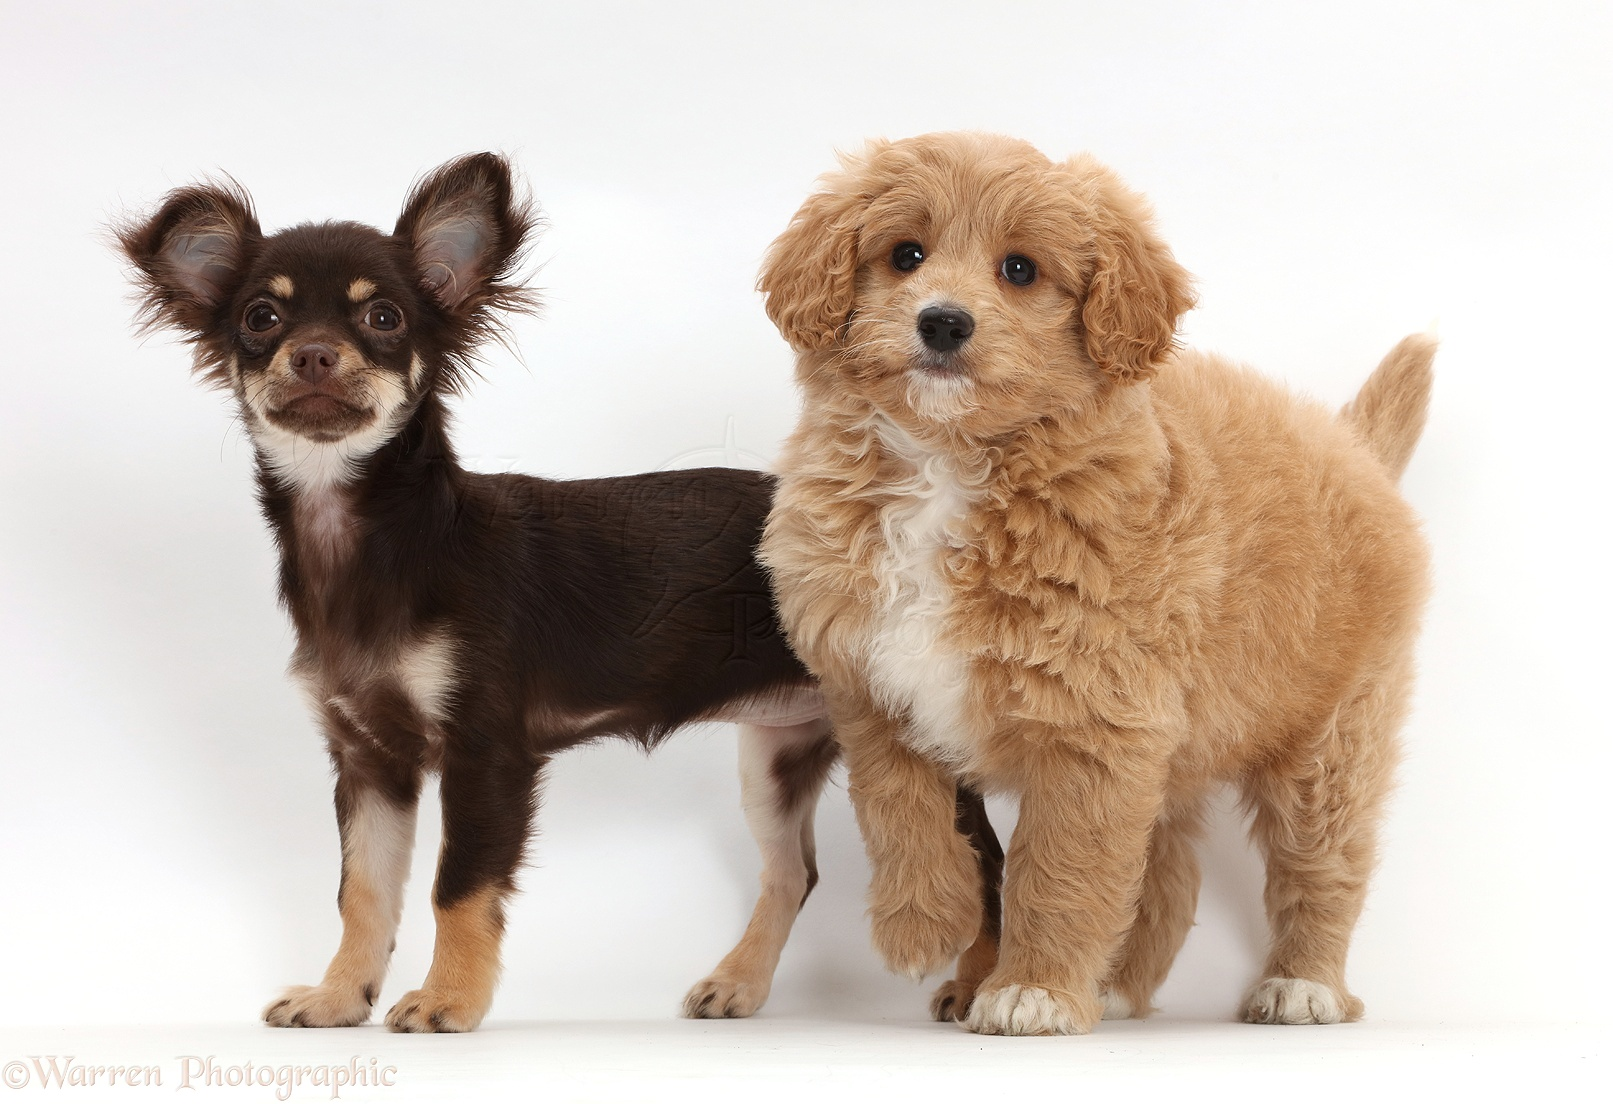 Dogs Chocolate And Tan Chihuahua With Cavapoo Puppy Photo Wp42969